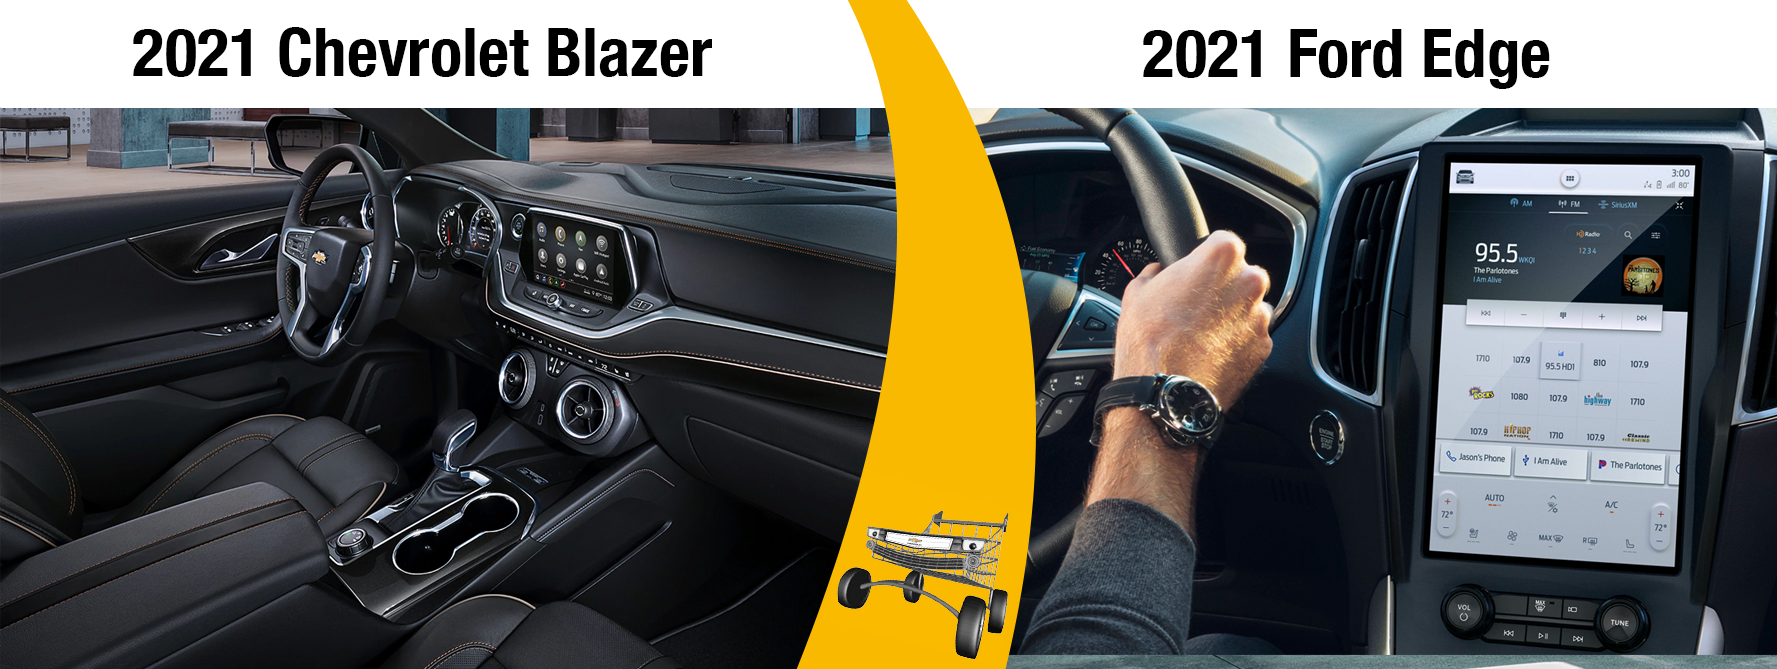 2021 Chevy Blazer vs 2021 Ford Edge Performance